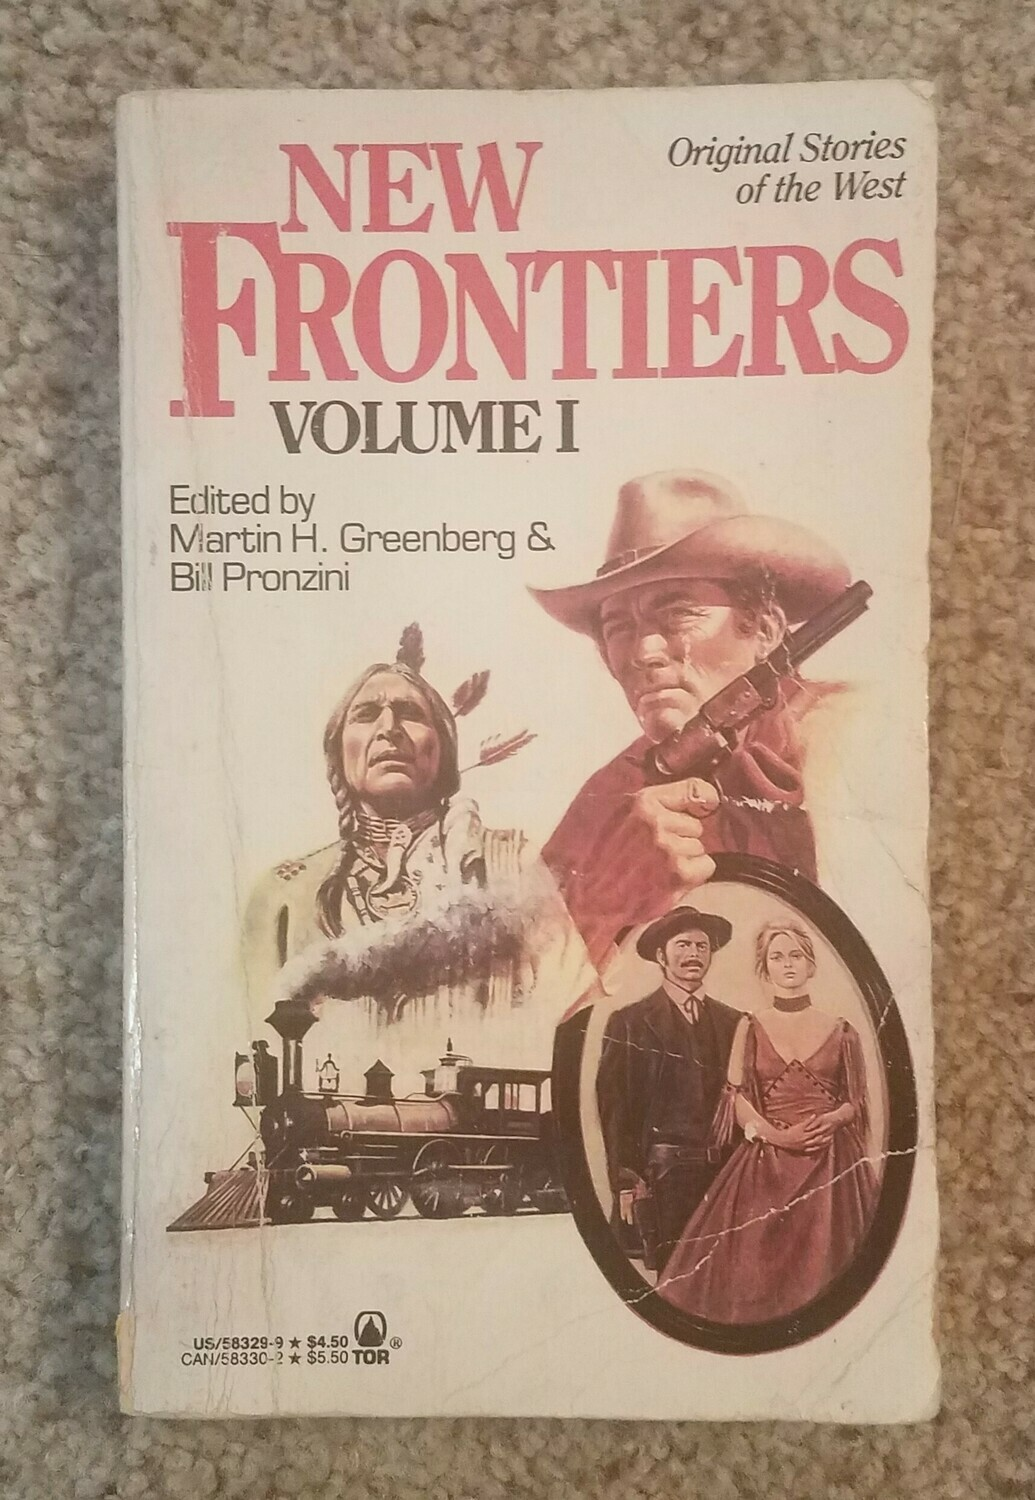 New Frontiers: Volume 1 by Martin H. Greenberg and Bill Pronziri